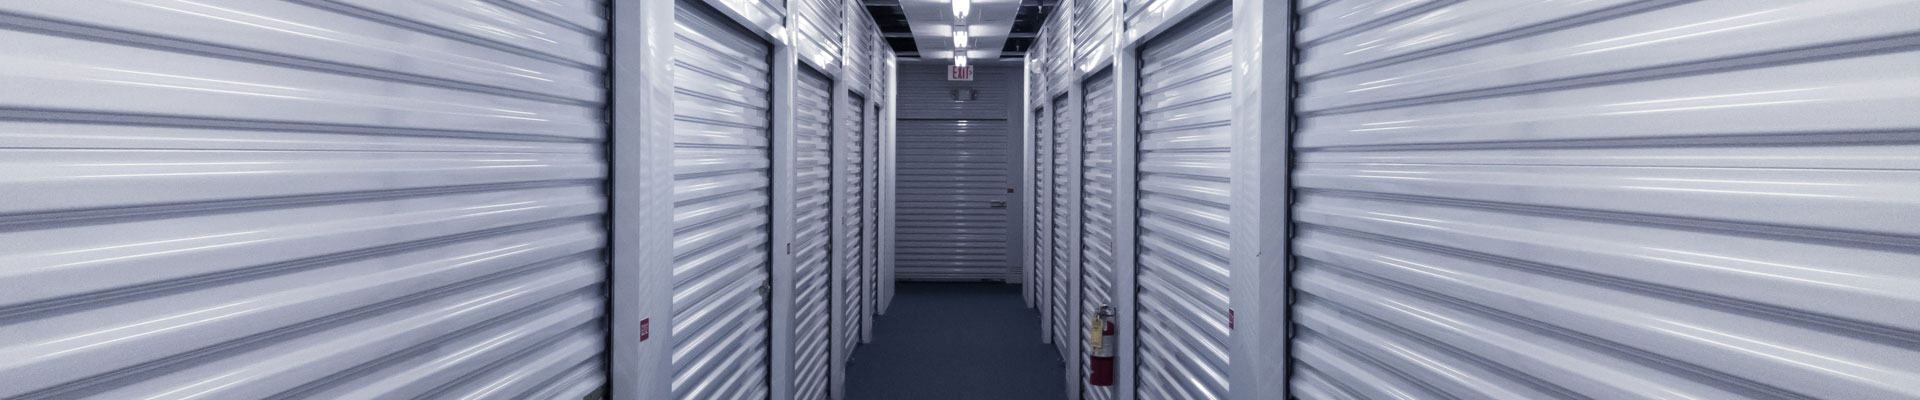 Allspace Self Storage Available In Huntington Beach Ca